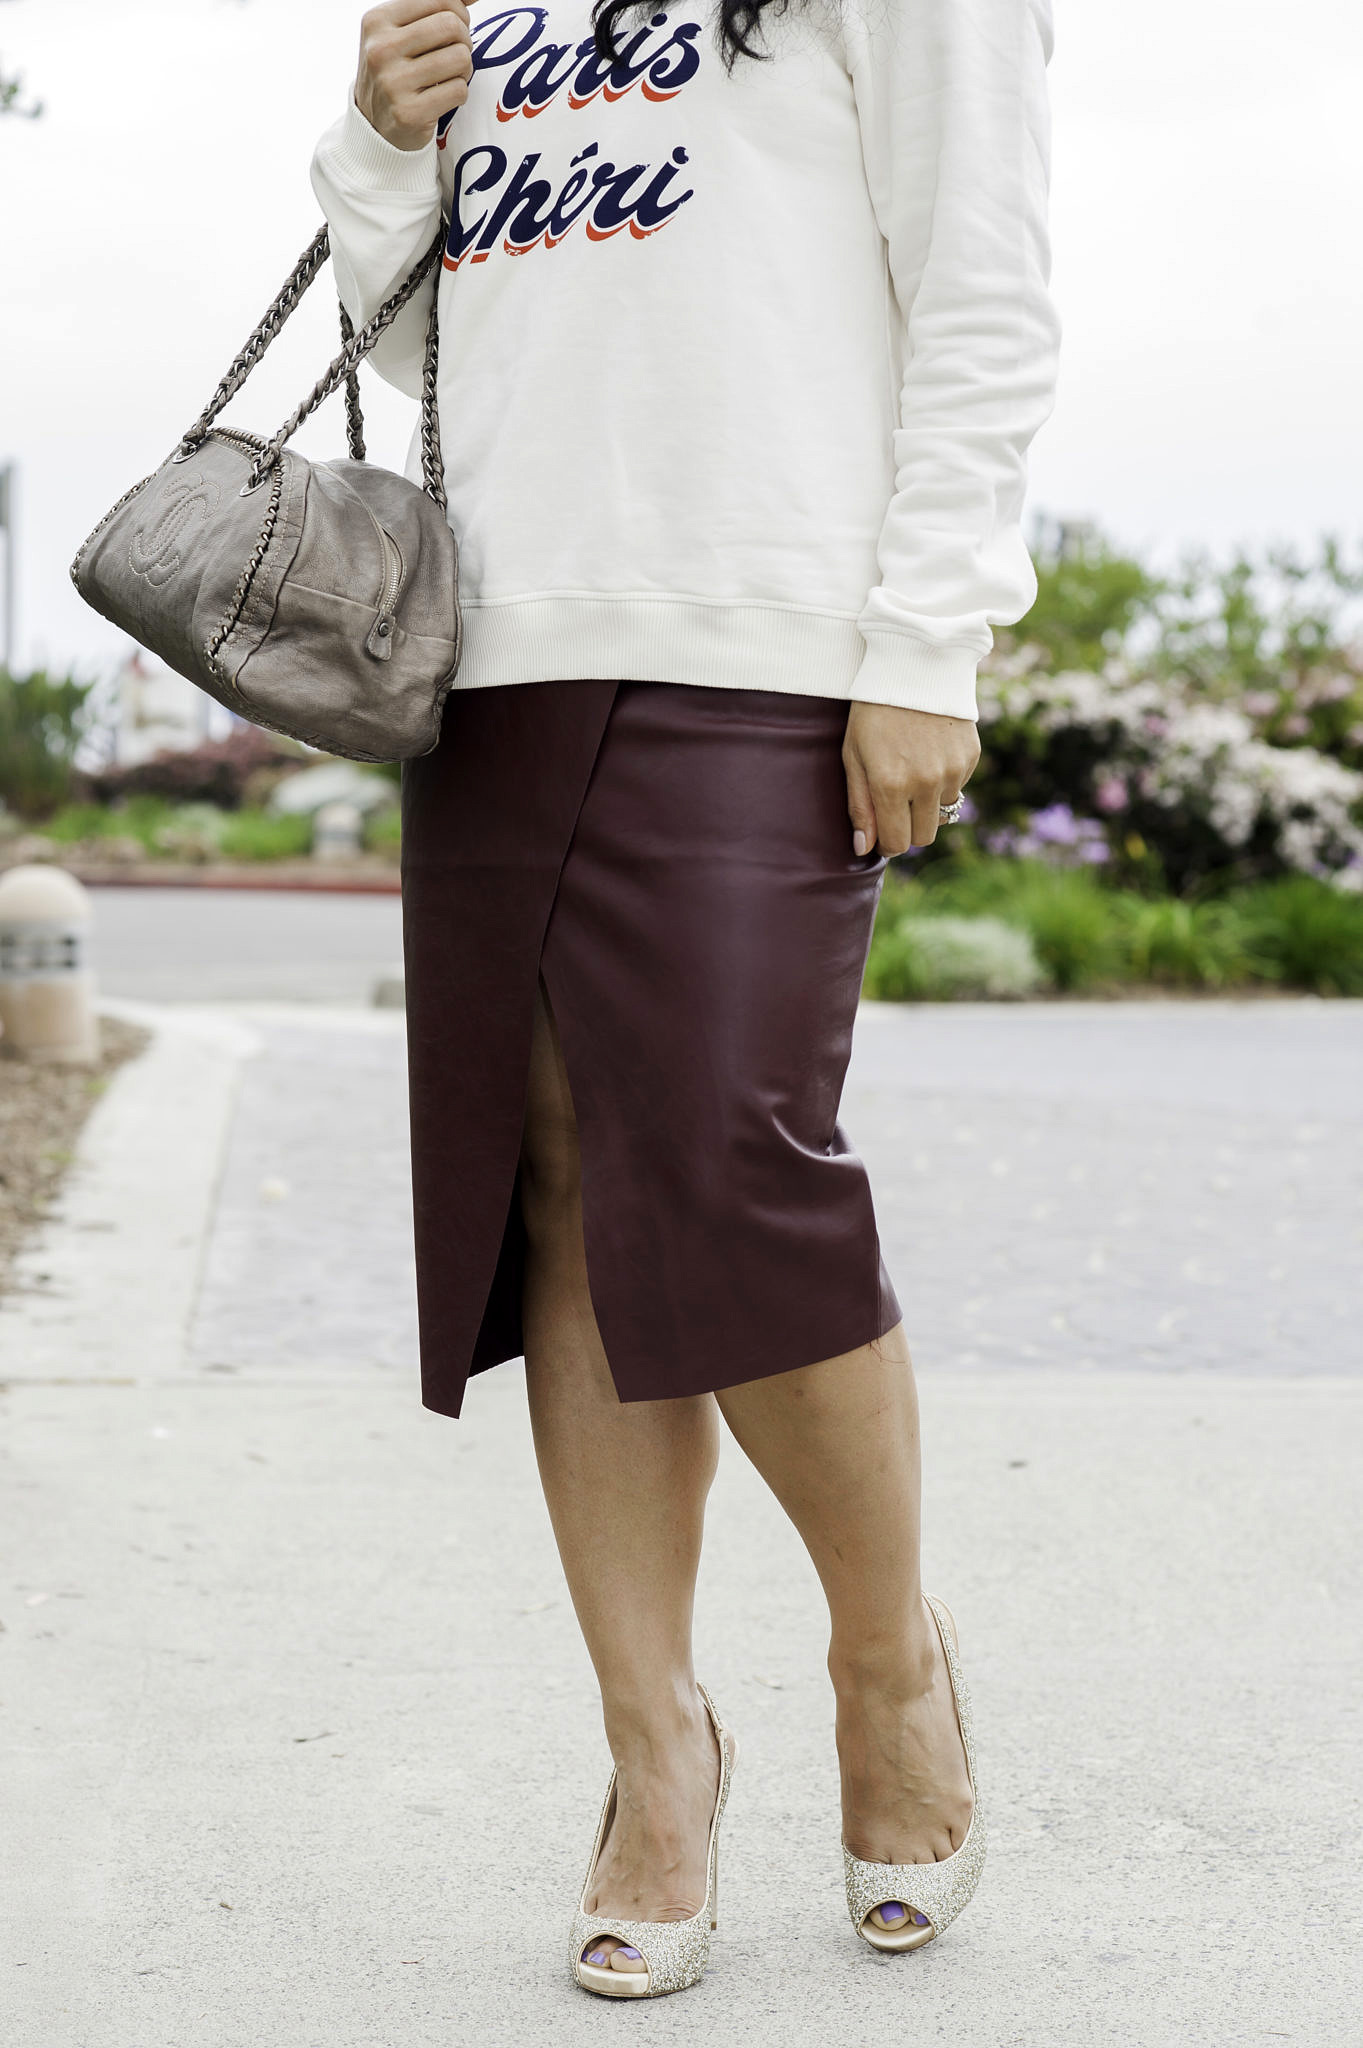 Want to channel your inner French women? Curious how to dress with Parisian effortless elegance? Click here!